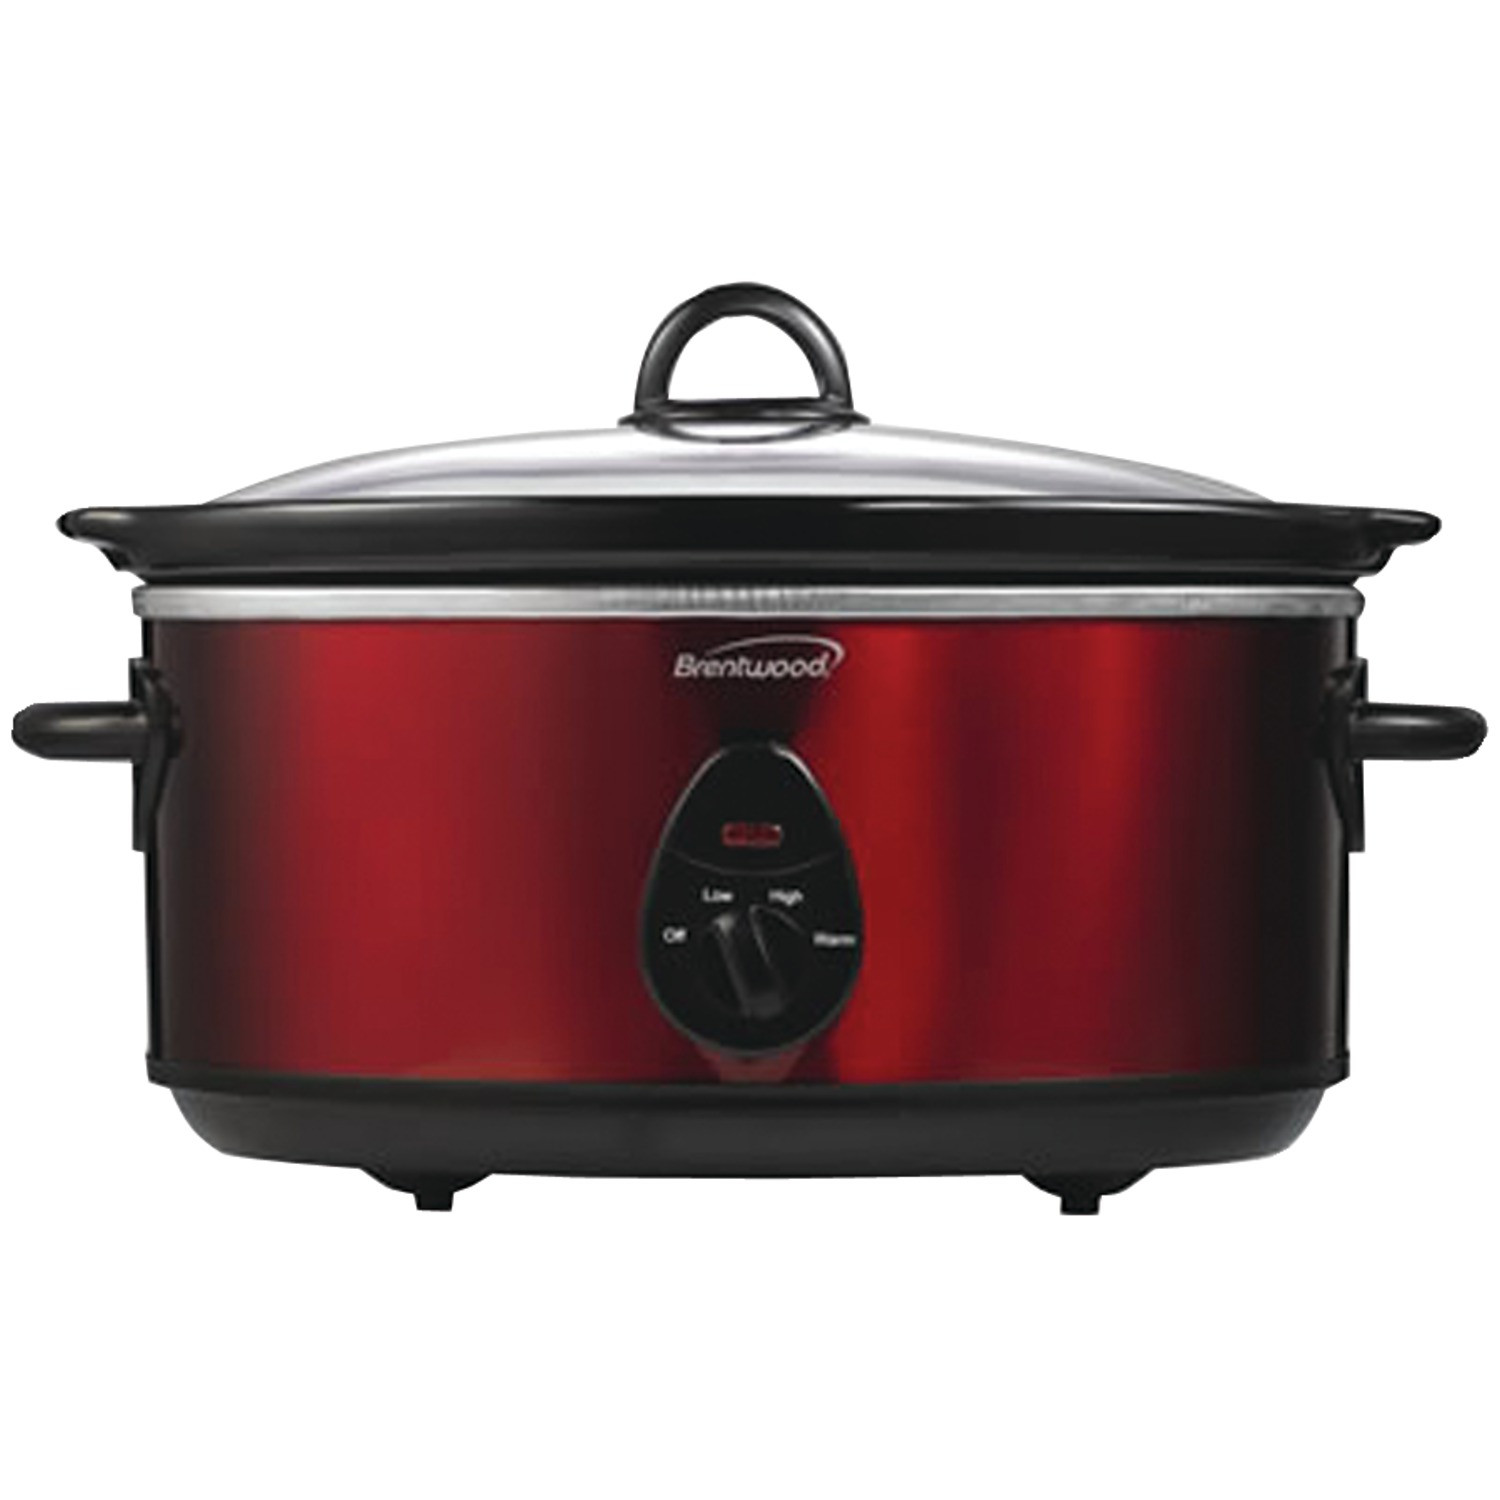 6.5 Quart Slow Cooker in Red by Brentwood Appliances